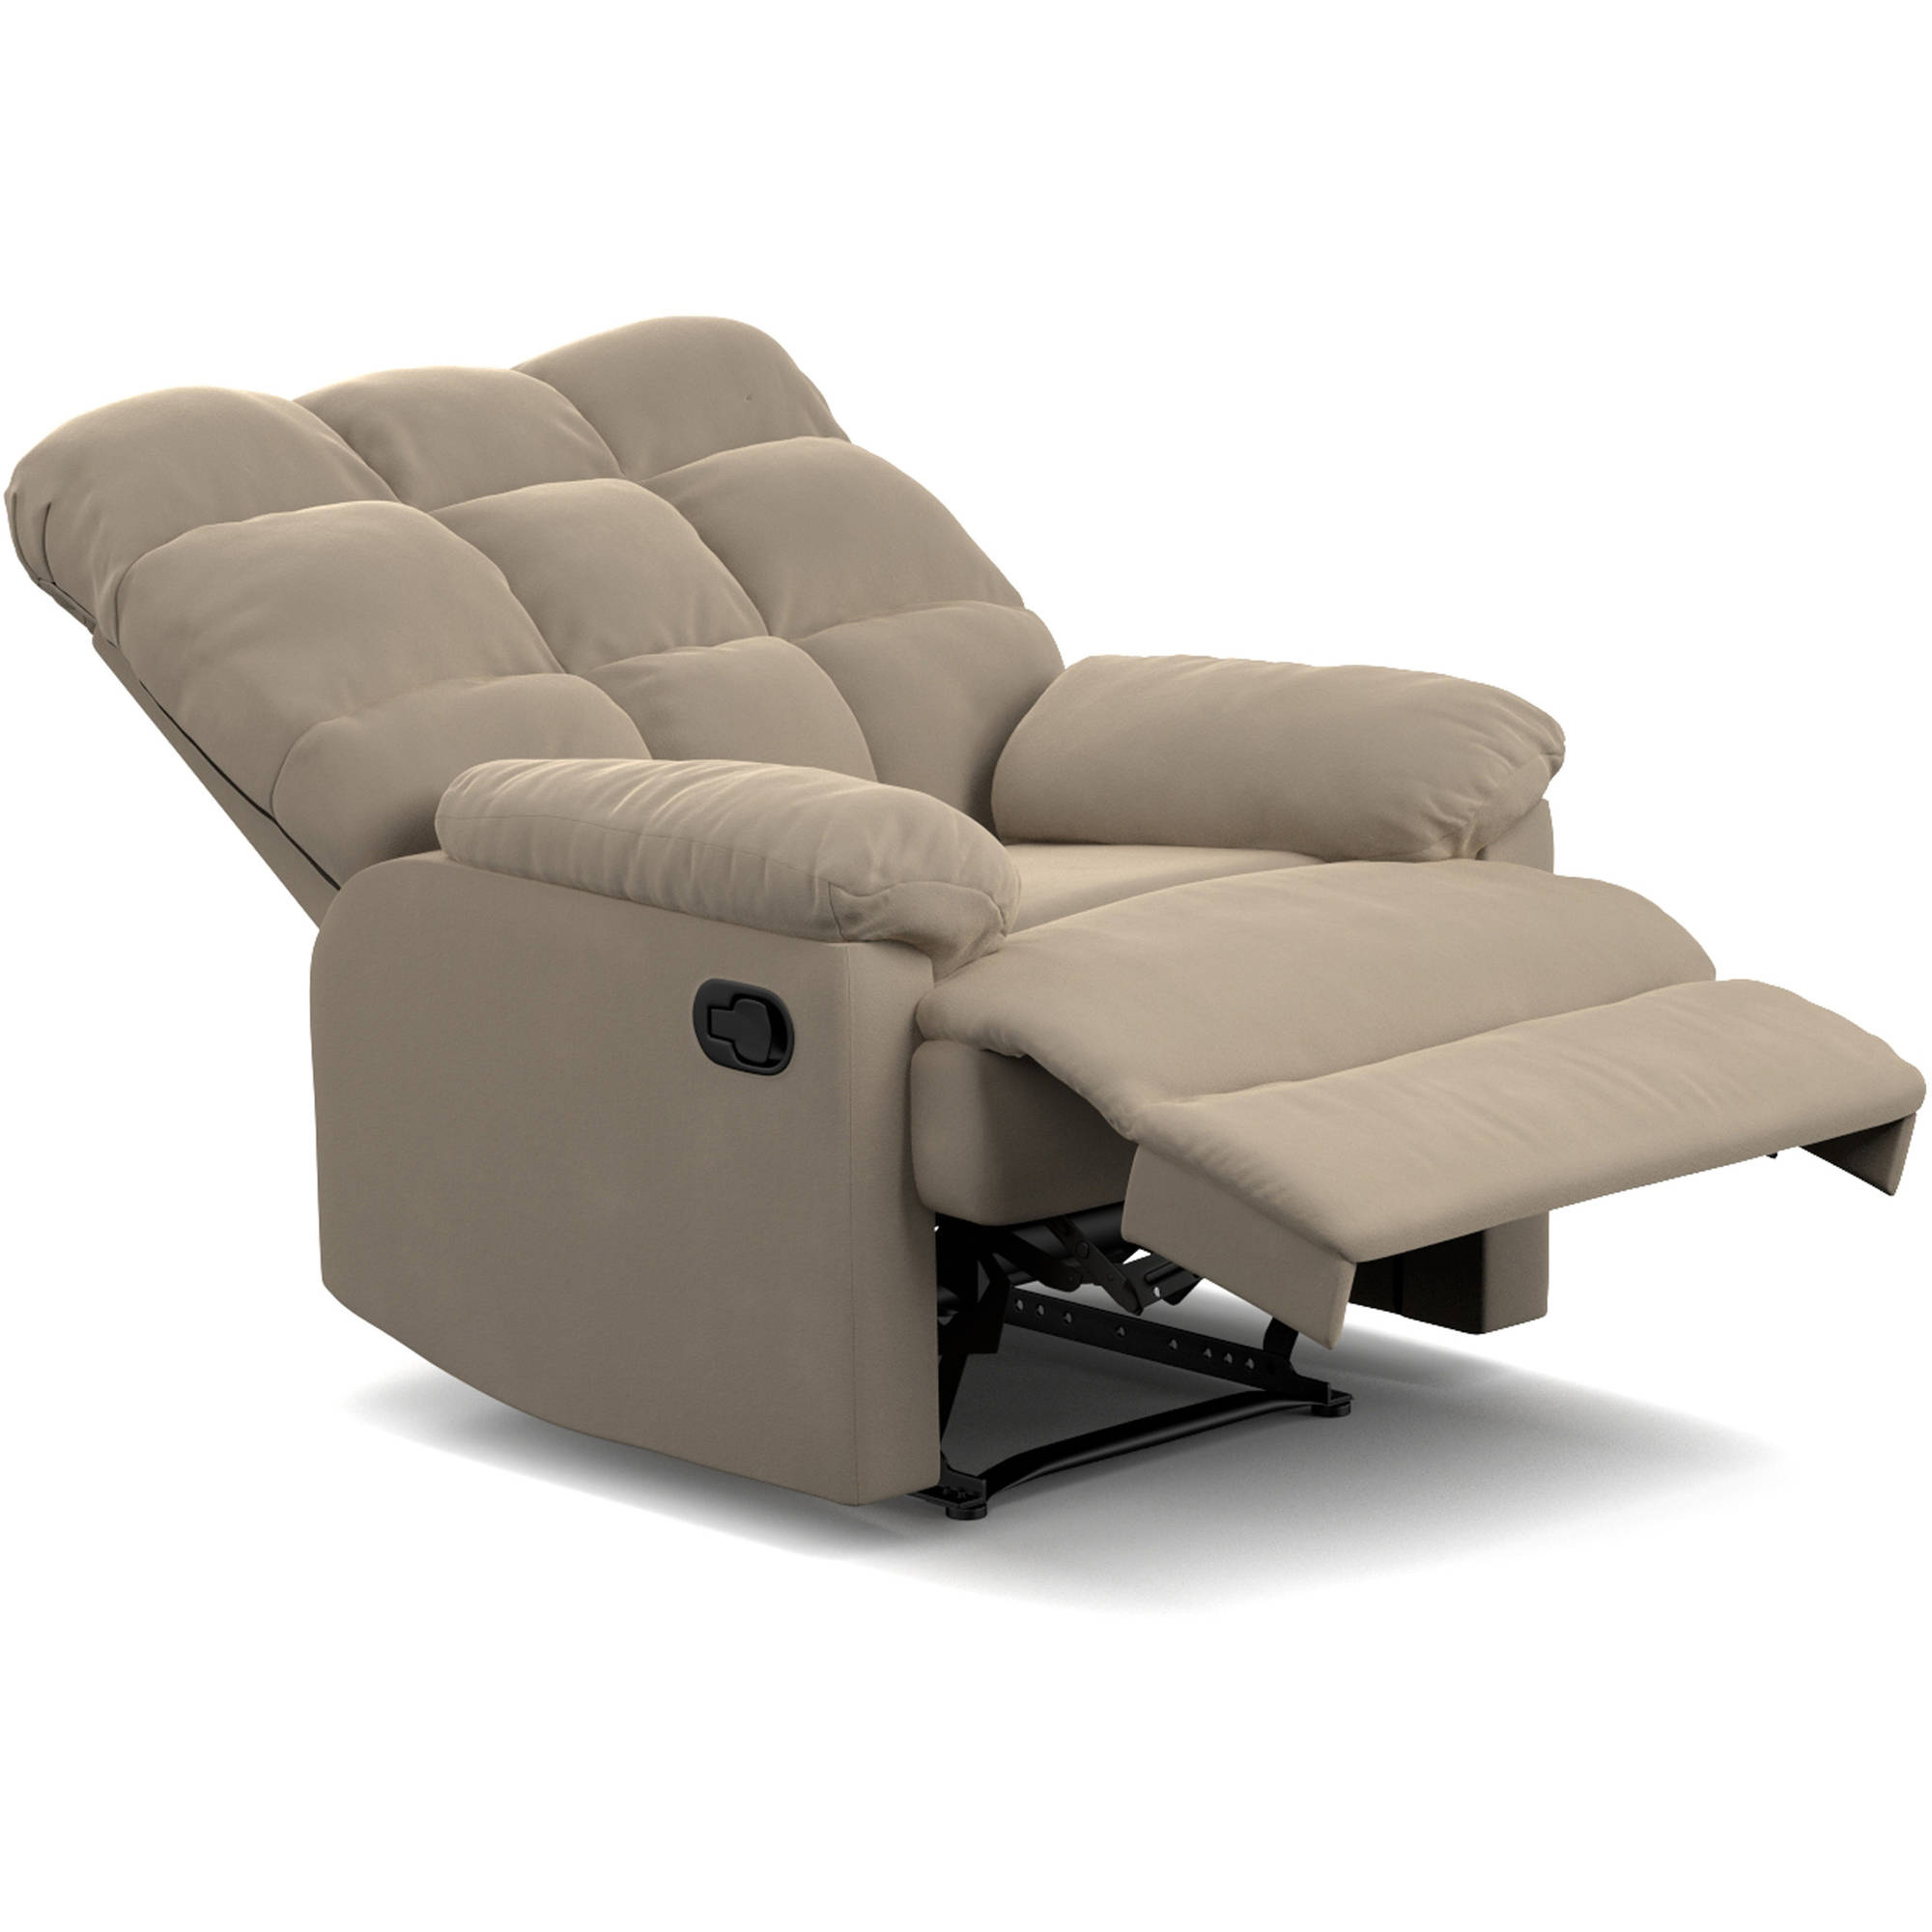 ProLounger Wall Hugger Microfiber Recliner Set of 2 Multiple Colors - Walmart.com  sc 1 st  Walmart : reclining chair bed - islam-shia.org